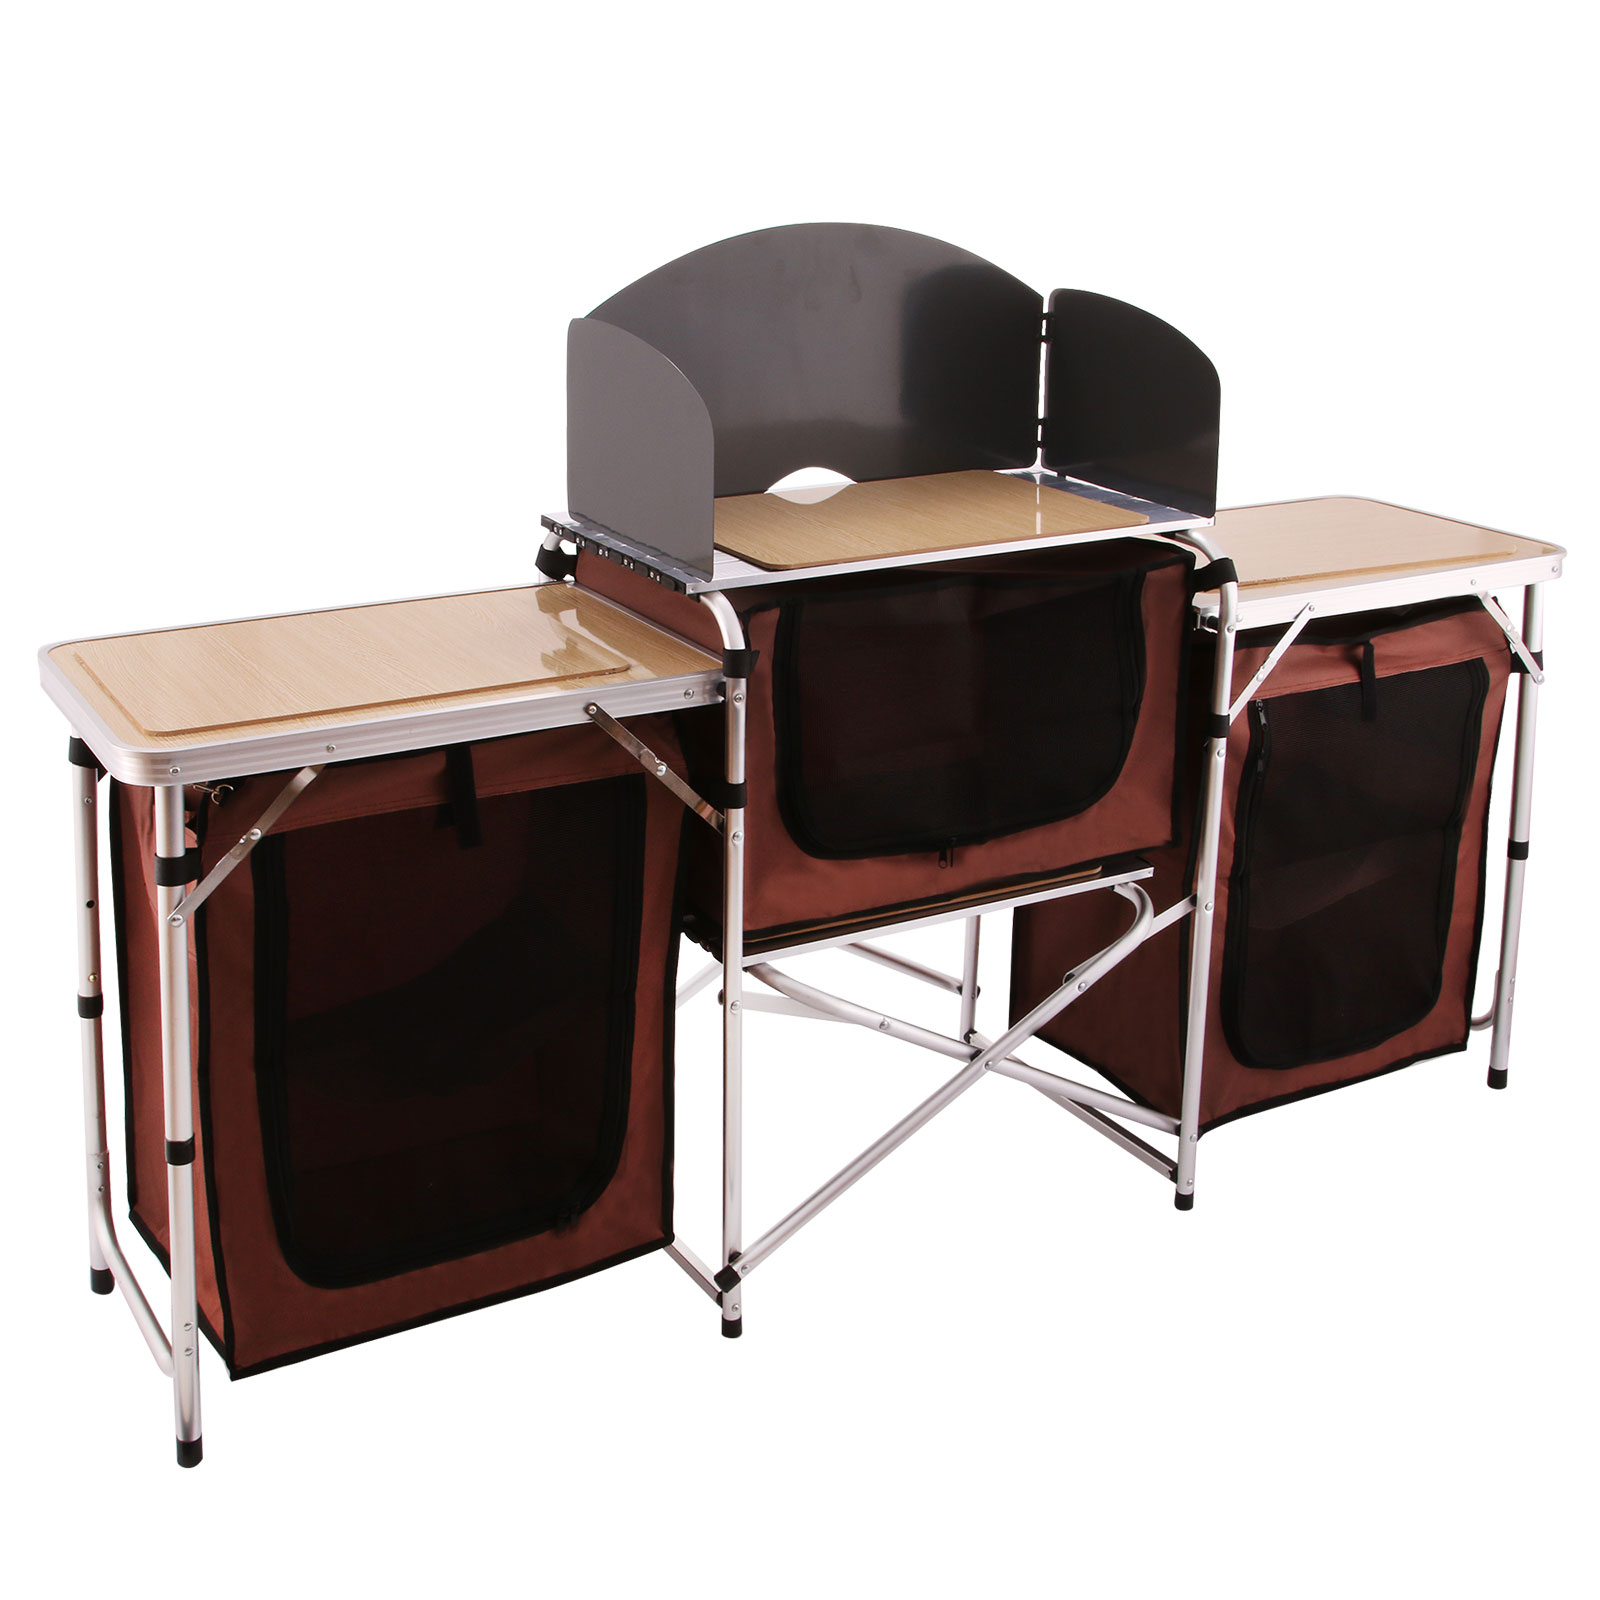 VEVOR Camping Kitchen Table Aluminum Alloy Fold Cooking S...